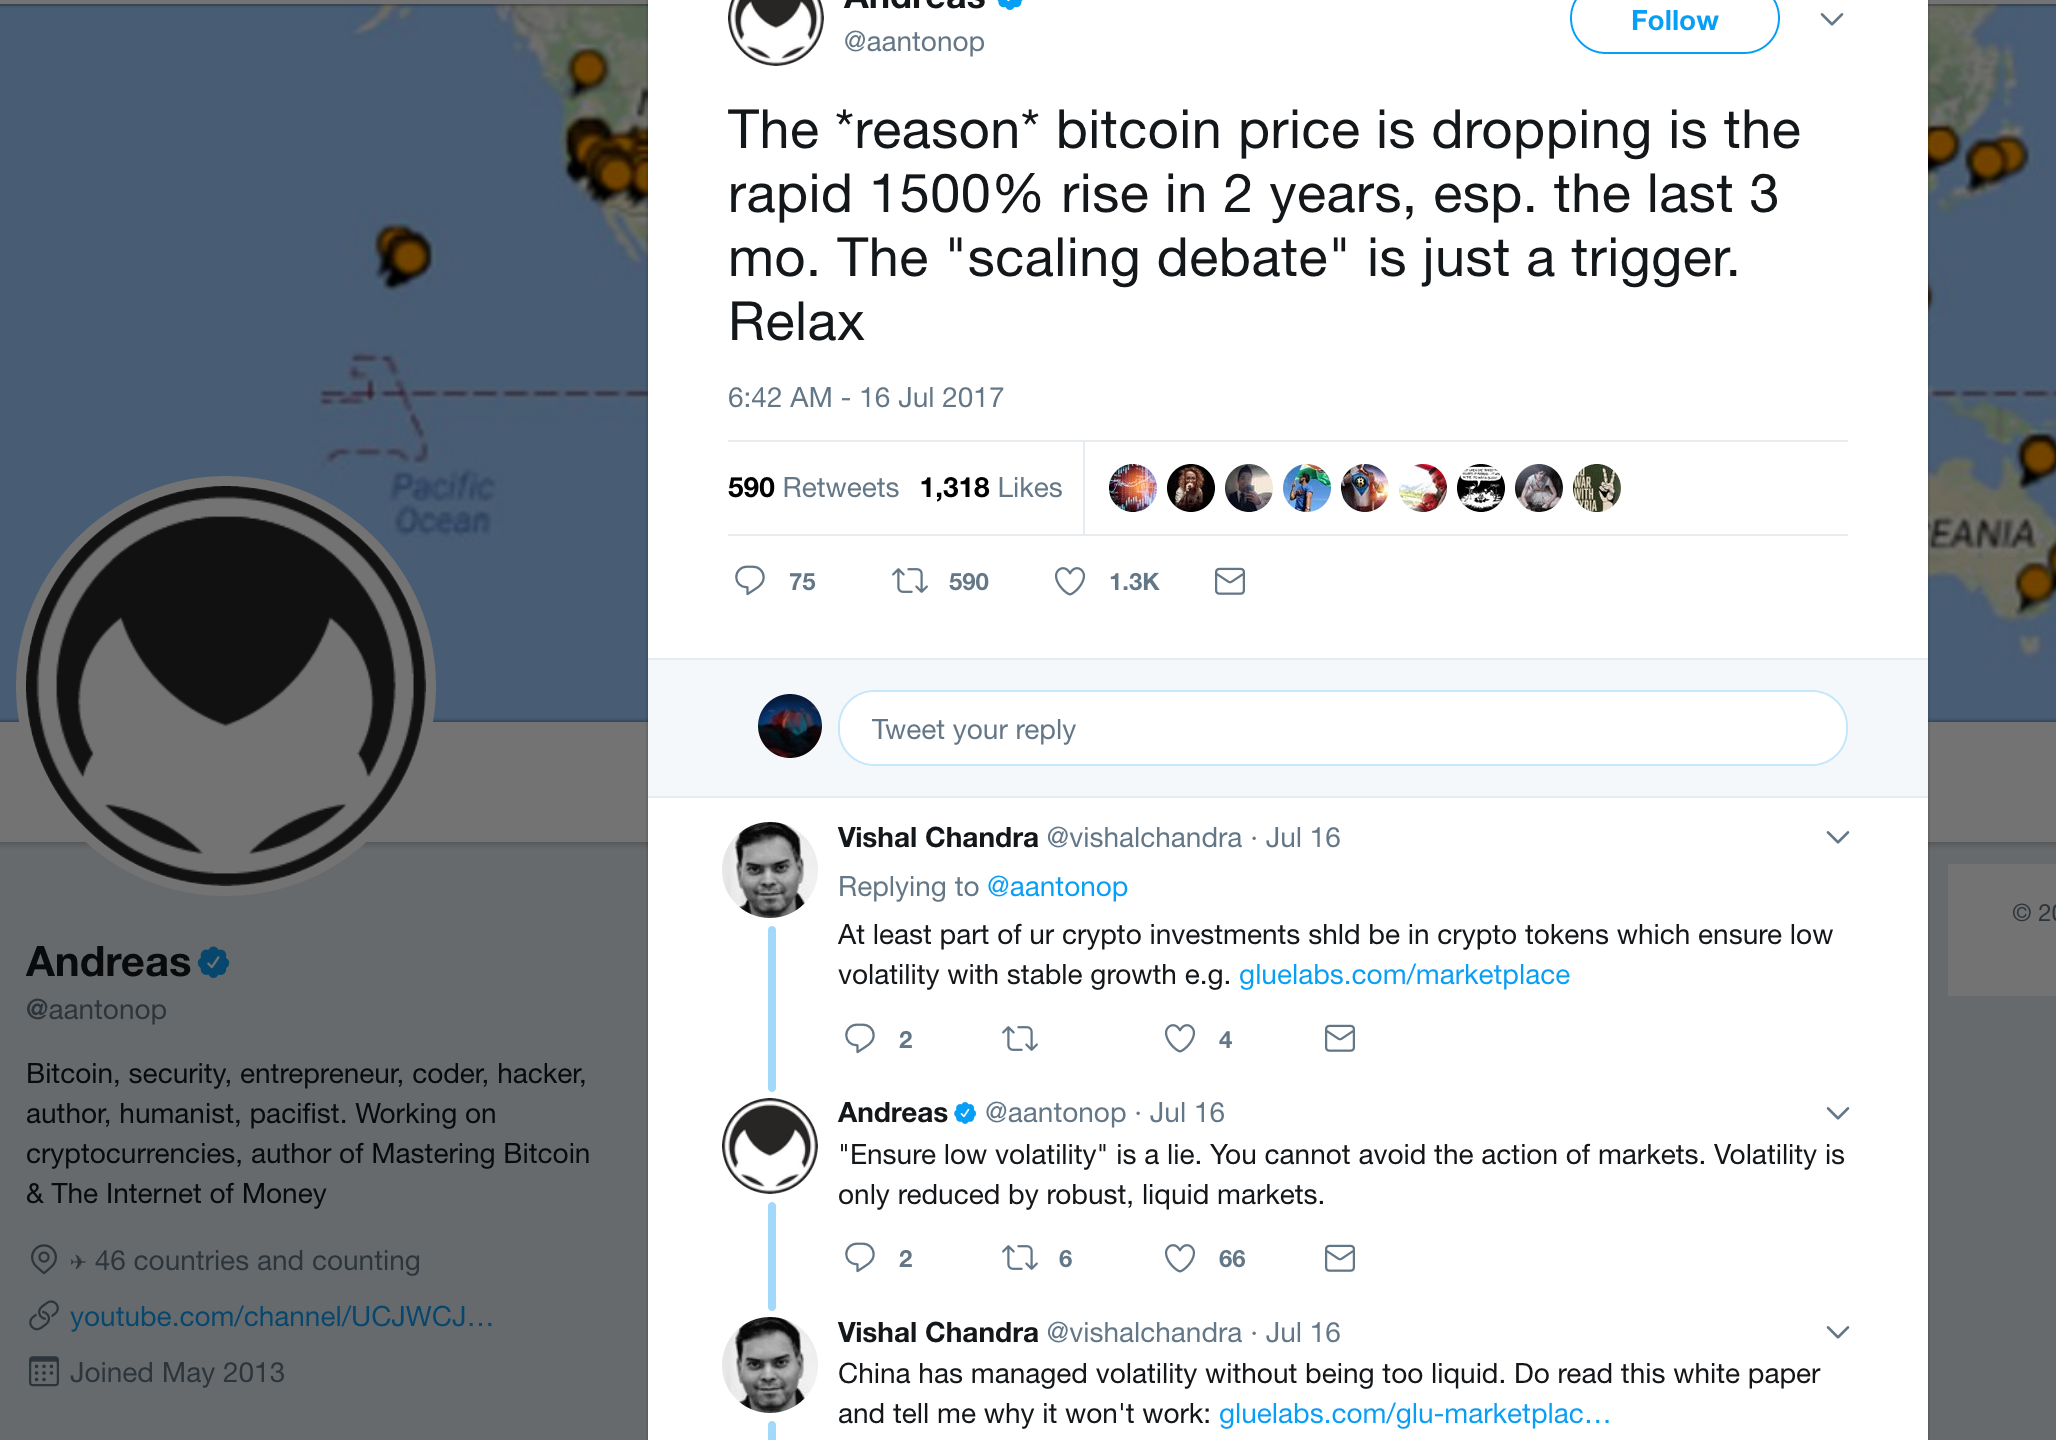 """""""The *reason* bitcoin price is dropping is the rapid 1500 rise in 2 years, esp. the last 3 mo. The """"scaling debate"""" is just a trigger. Relax"""""""